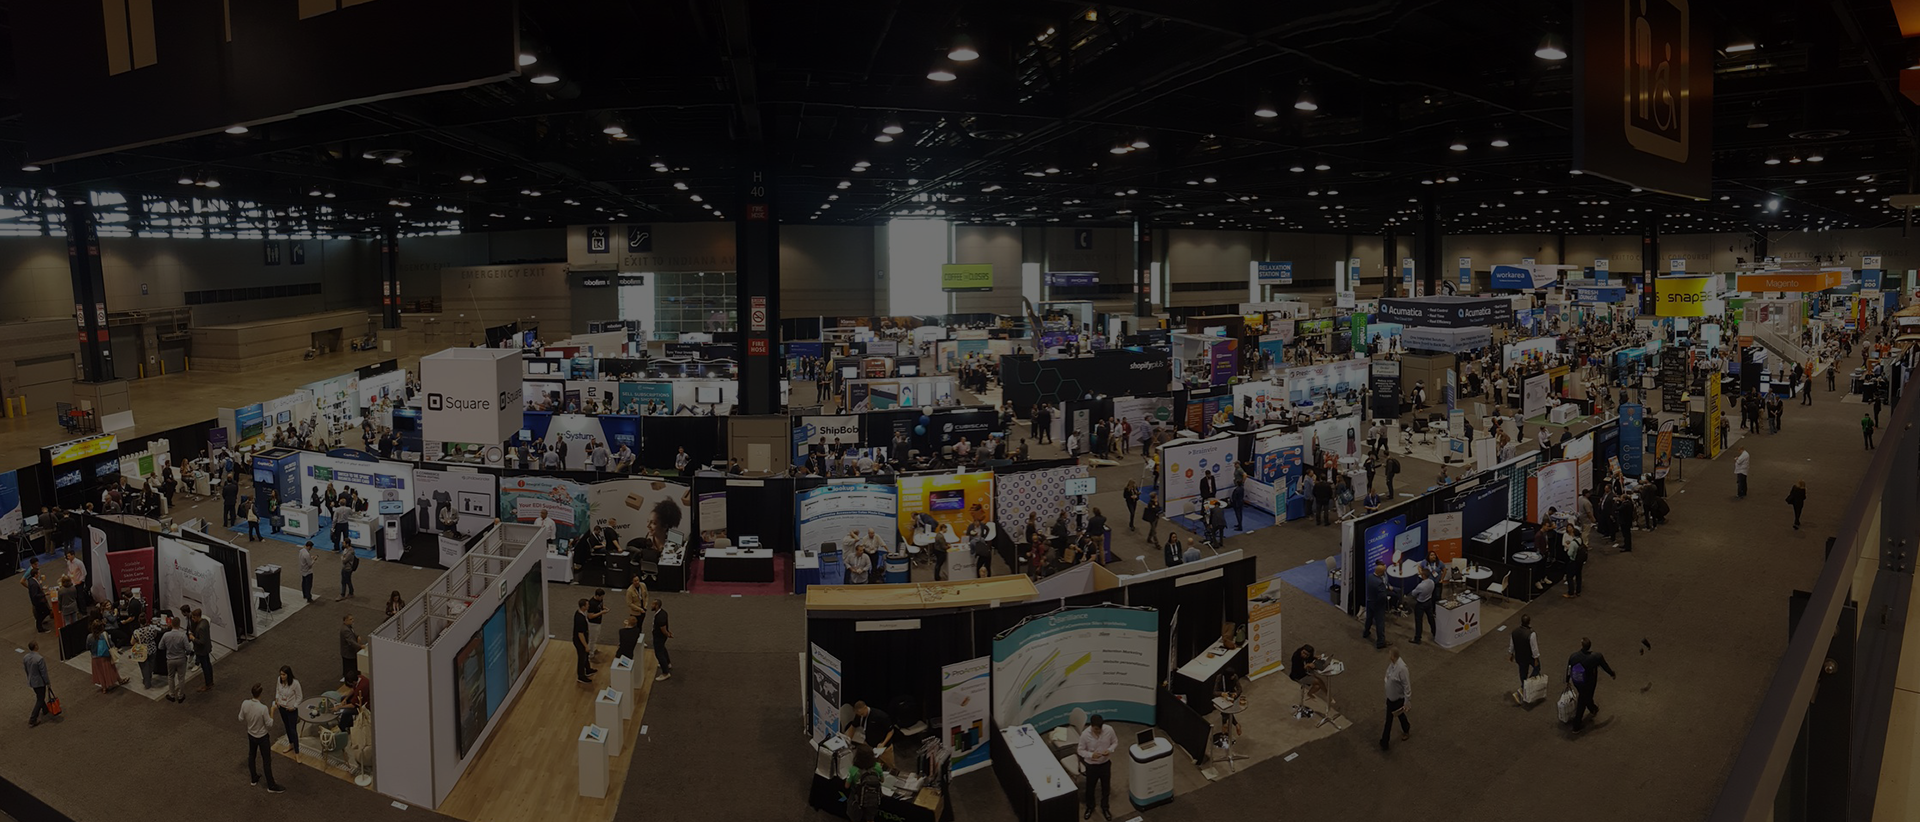 Futurism Technologies At IRCE 2019 Conference in Chicago